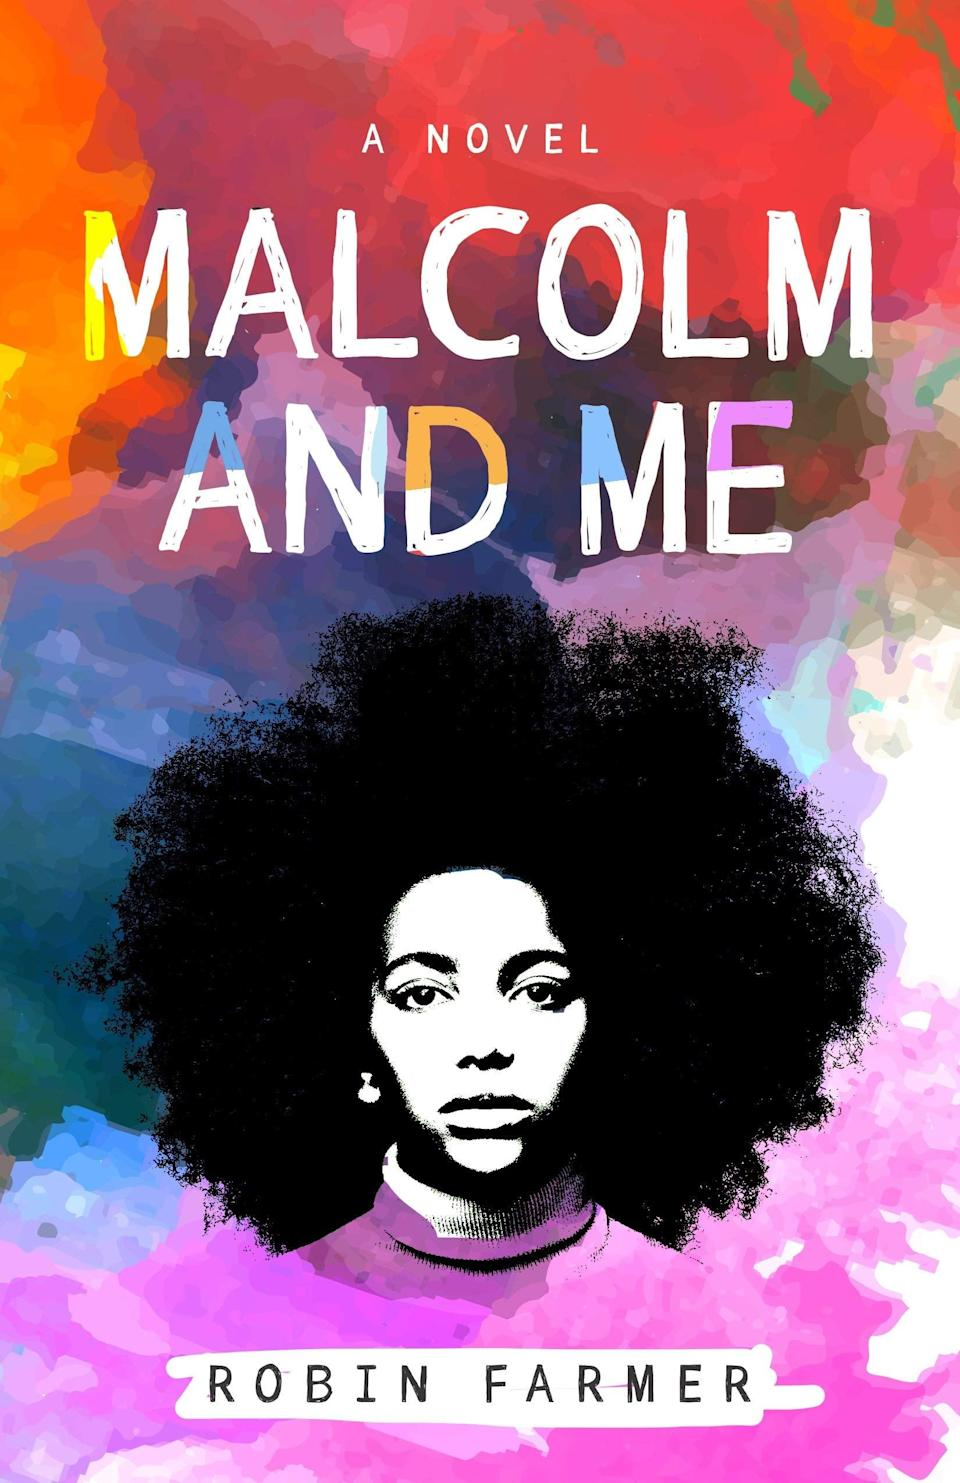 <p><span><b>Malcom and Me</b></span> by Robin Farmer is an evocative coming of age story set against the backdrop of the Watergate era. When 13-year-old Roberta is told she's ineligible to compete in an essay contest at school, she responds with an outrage that speaks both to her frustration surrounding her parents' crumbling marriage and her growing interest in activism in this novel about the messy process of growing up. </p> <p><em>Out Nov. 17</em></p>